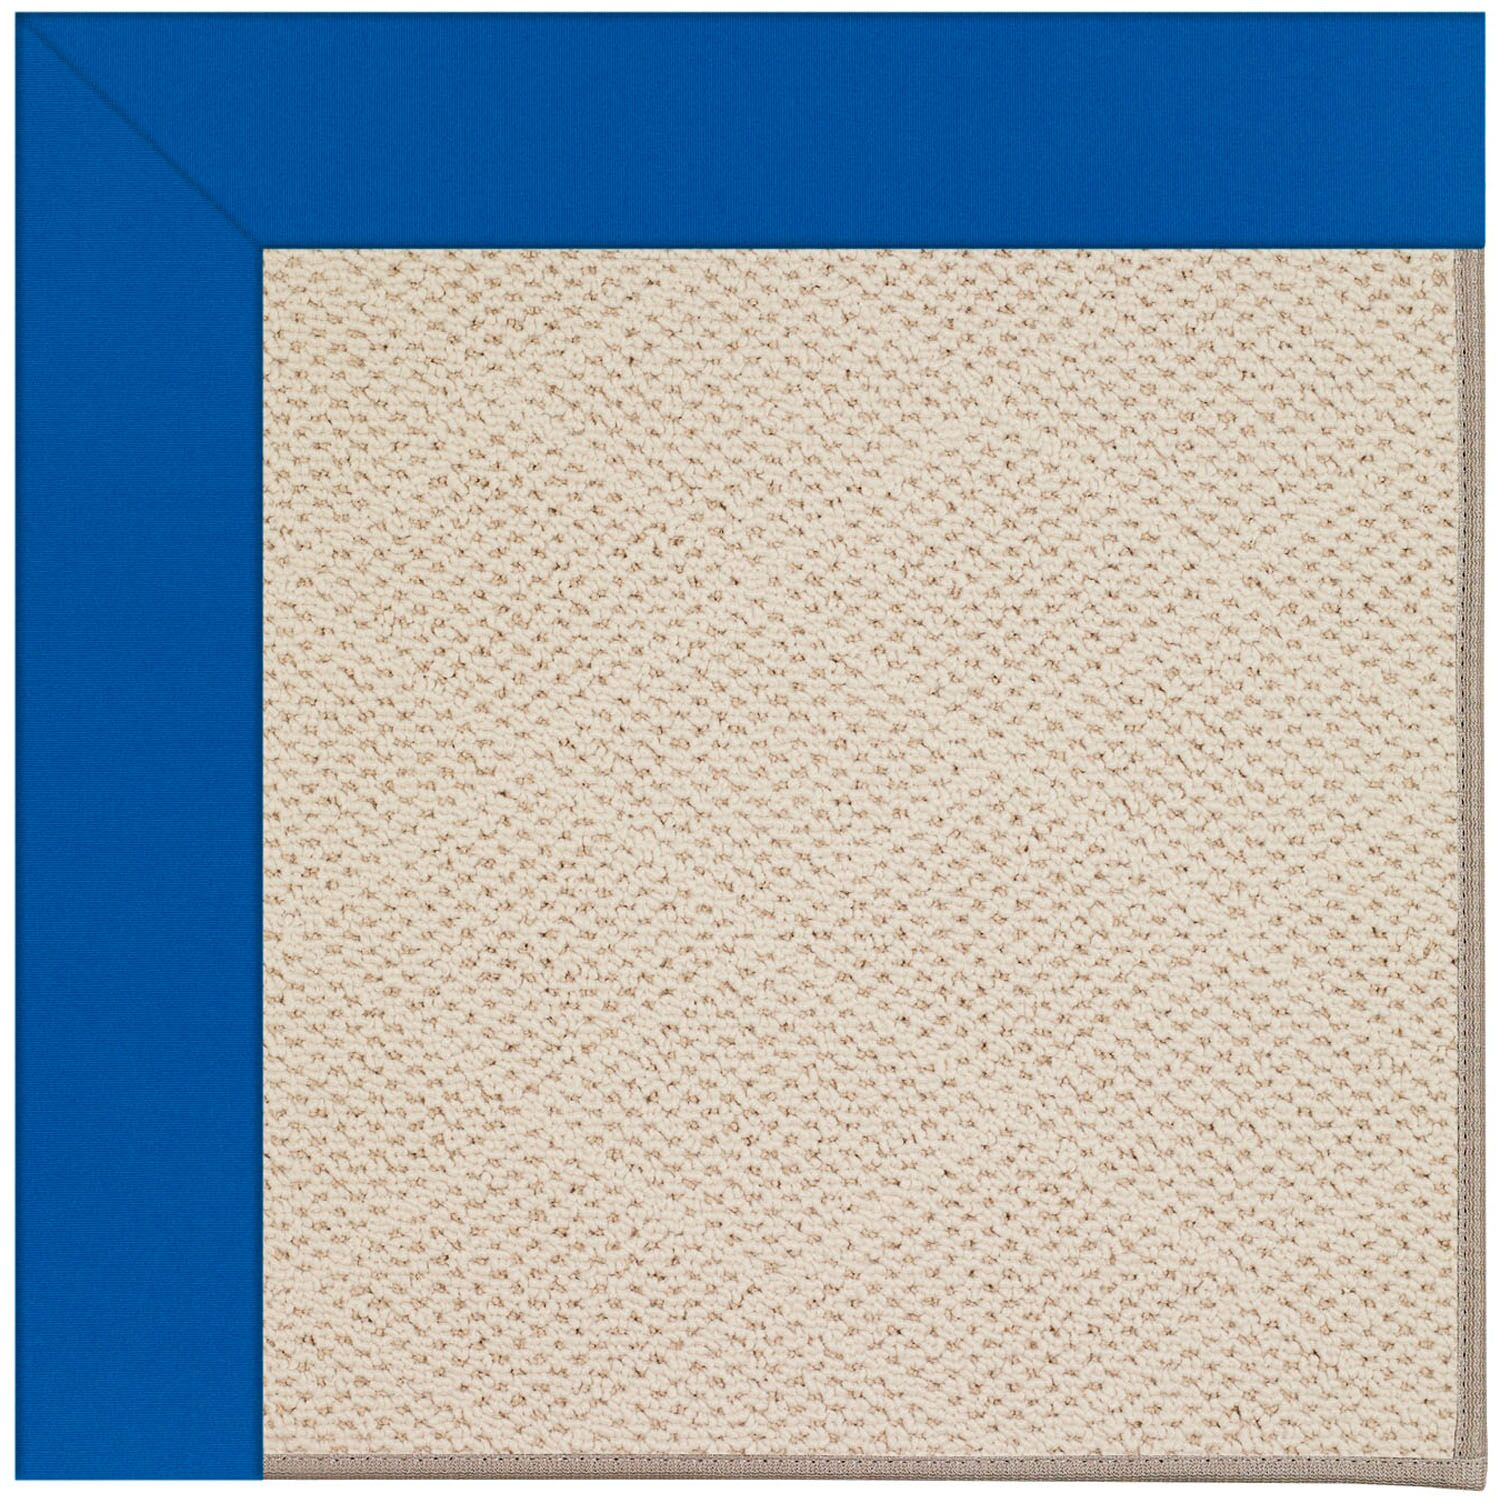 Lisle Beige Indoor/Outdoor Area Rug Rug Size: Rectangle 5' x 8'